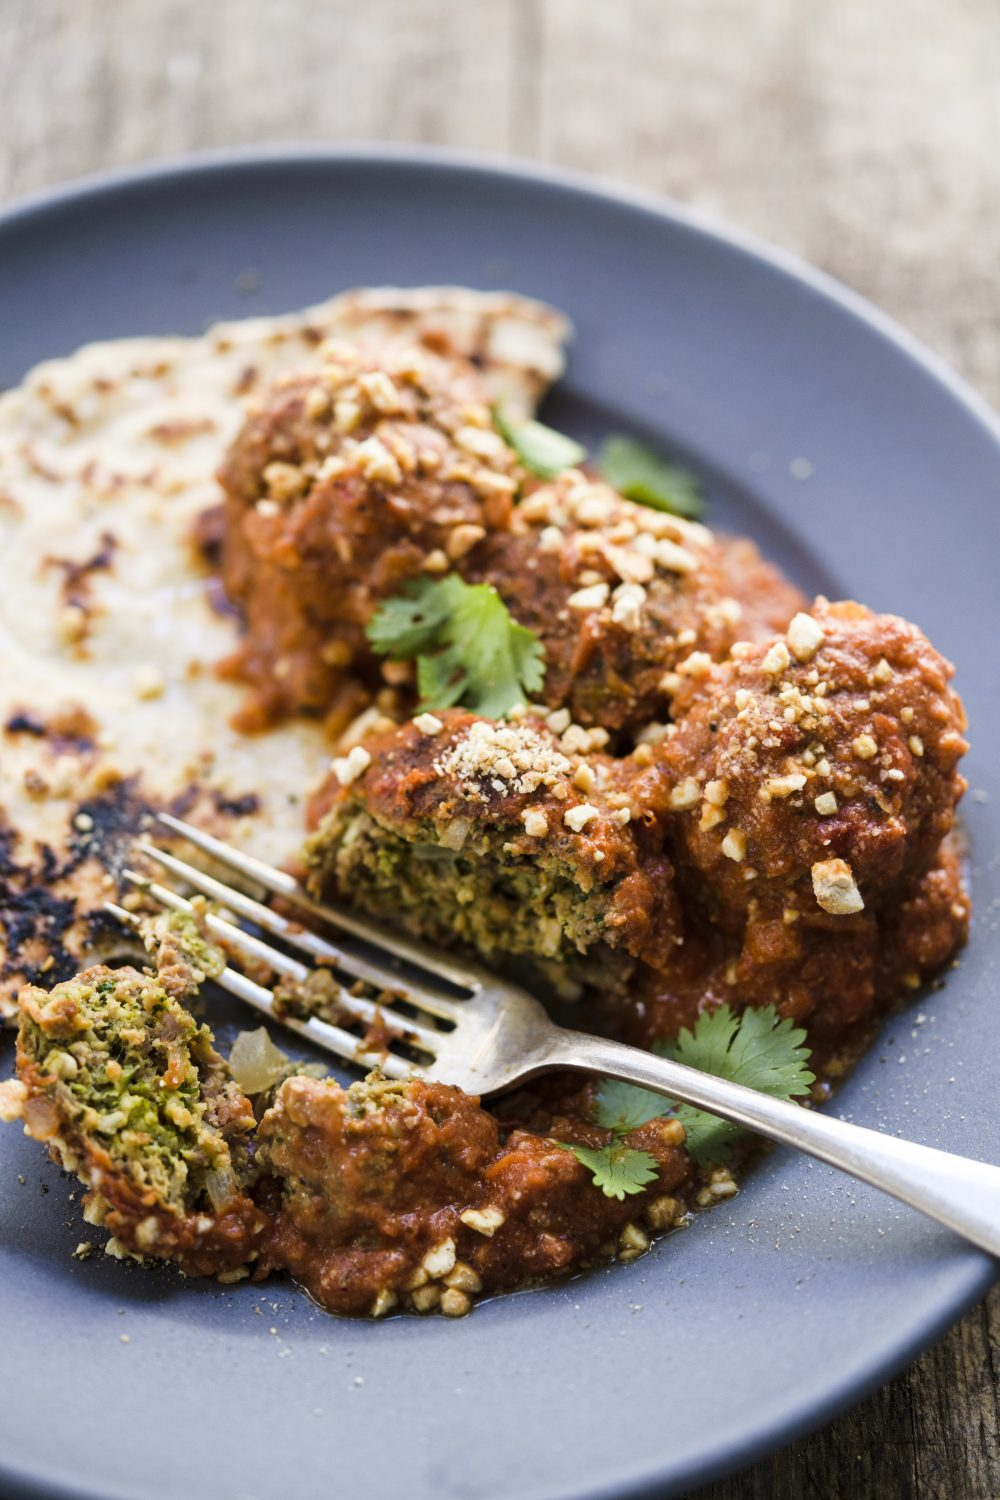 Cashew-Coconut Meatballs with Creamy Spiced Tomato Sauce